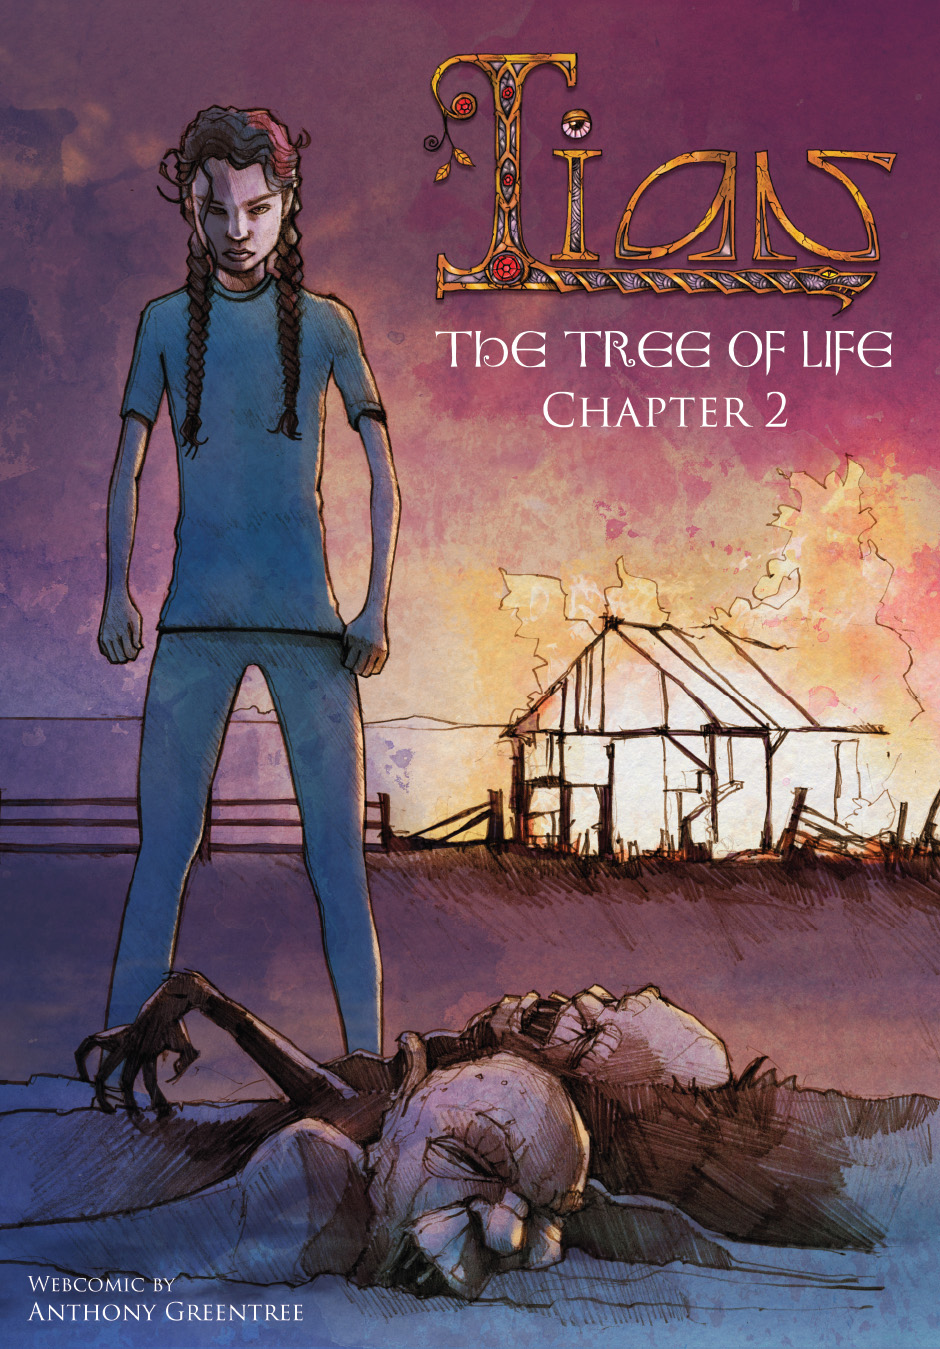 Lian Webcomic, The Tree of Life. Front Cover, chapter 2